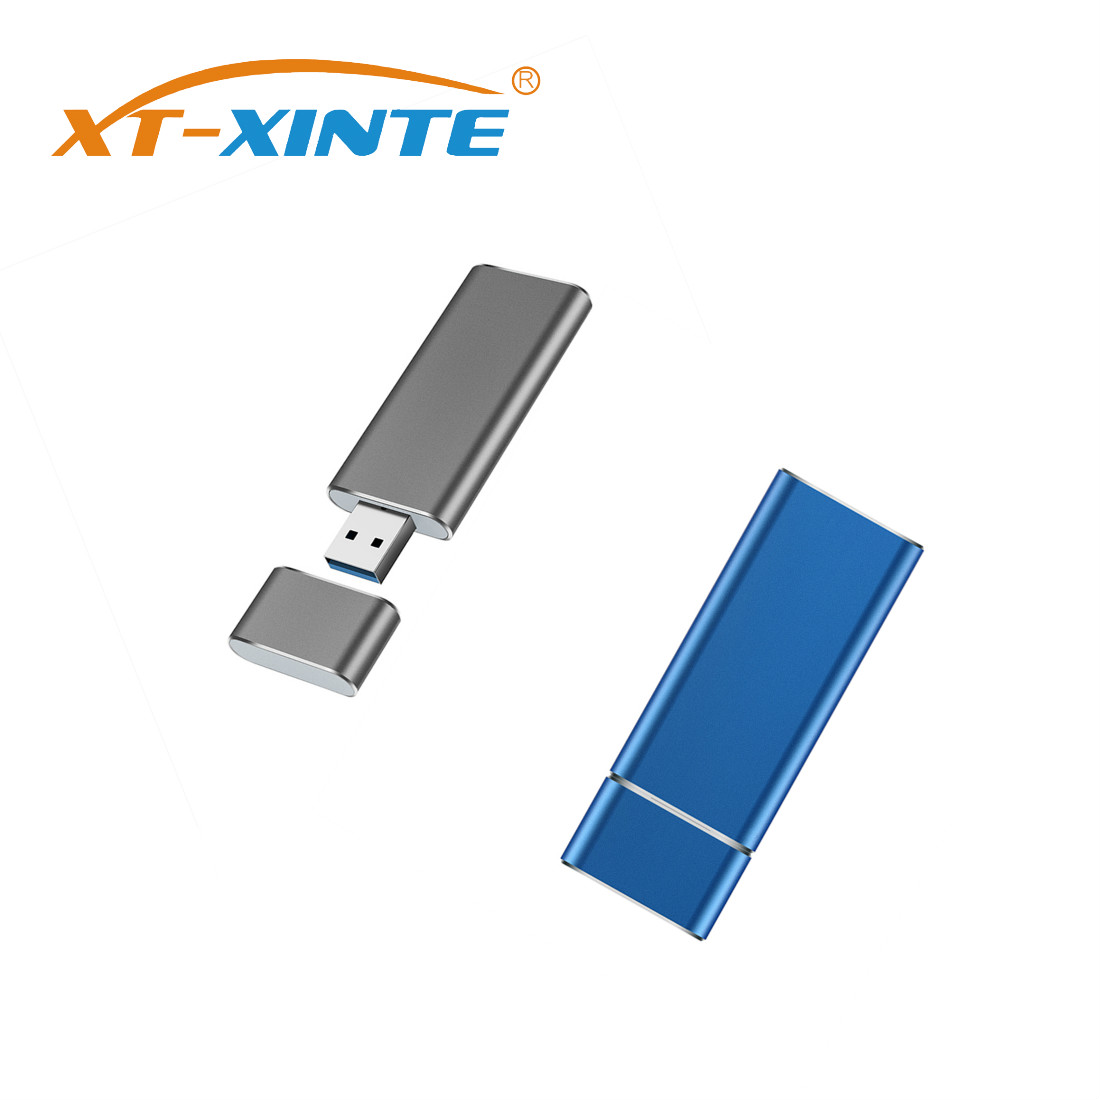 XT-XINTE M.2 NGFF USB3.0 TO SSD Enclosure Solid State Drive External Case Adapter UASP SuperSpeed 5Gbps For 2230 2242 M.2 NGFF